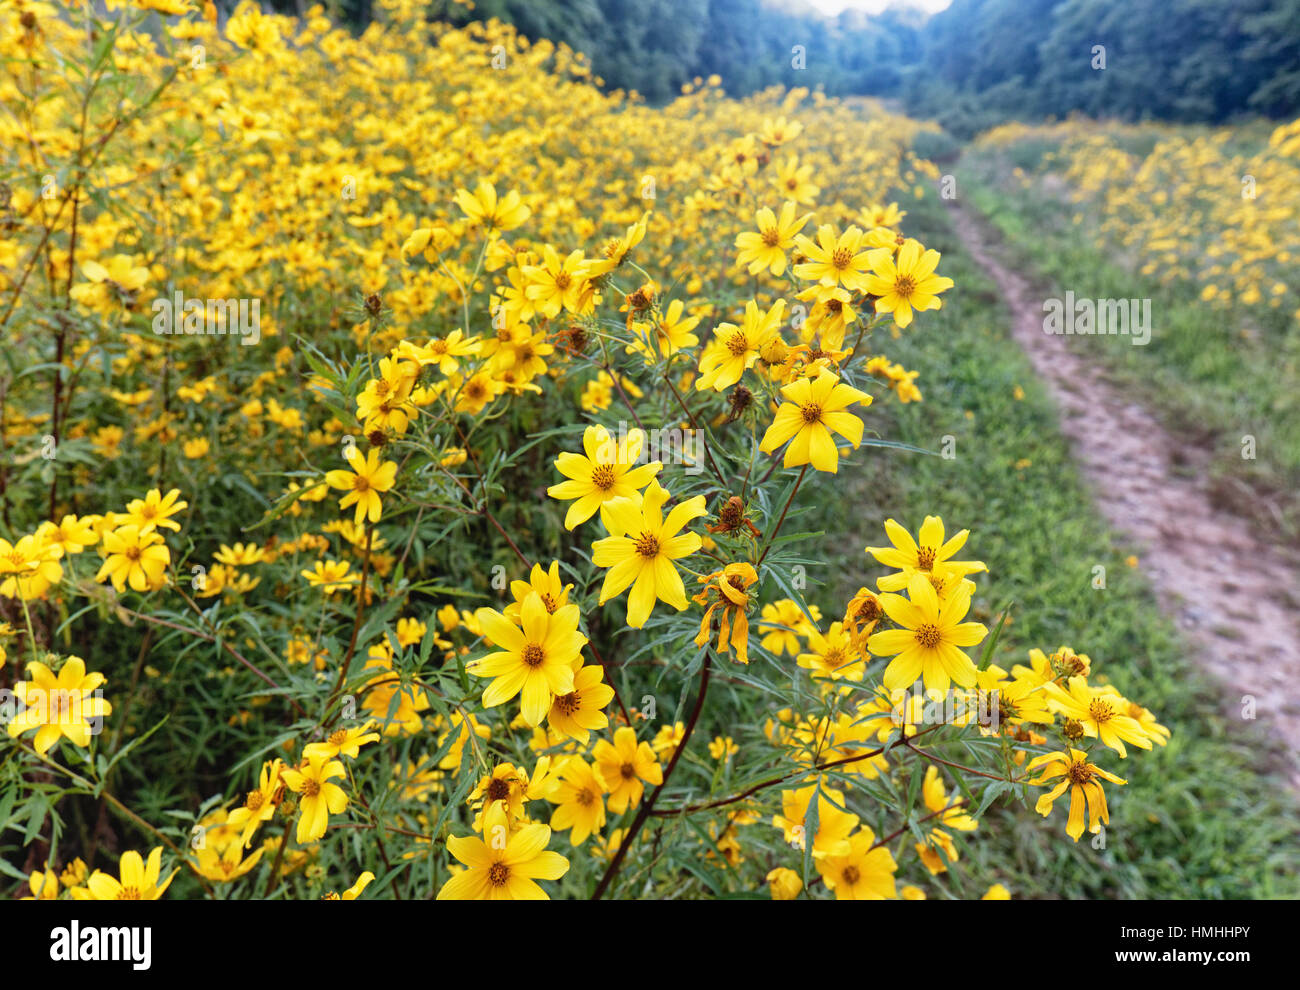 Close Up View of Yellow Wildflowers Blooming in a Meadow, New Jersey - Stock Image